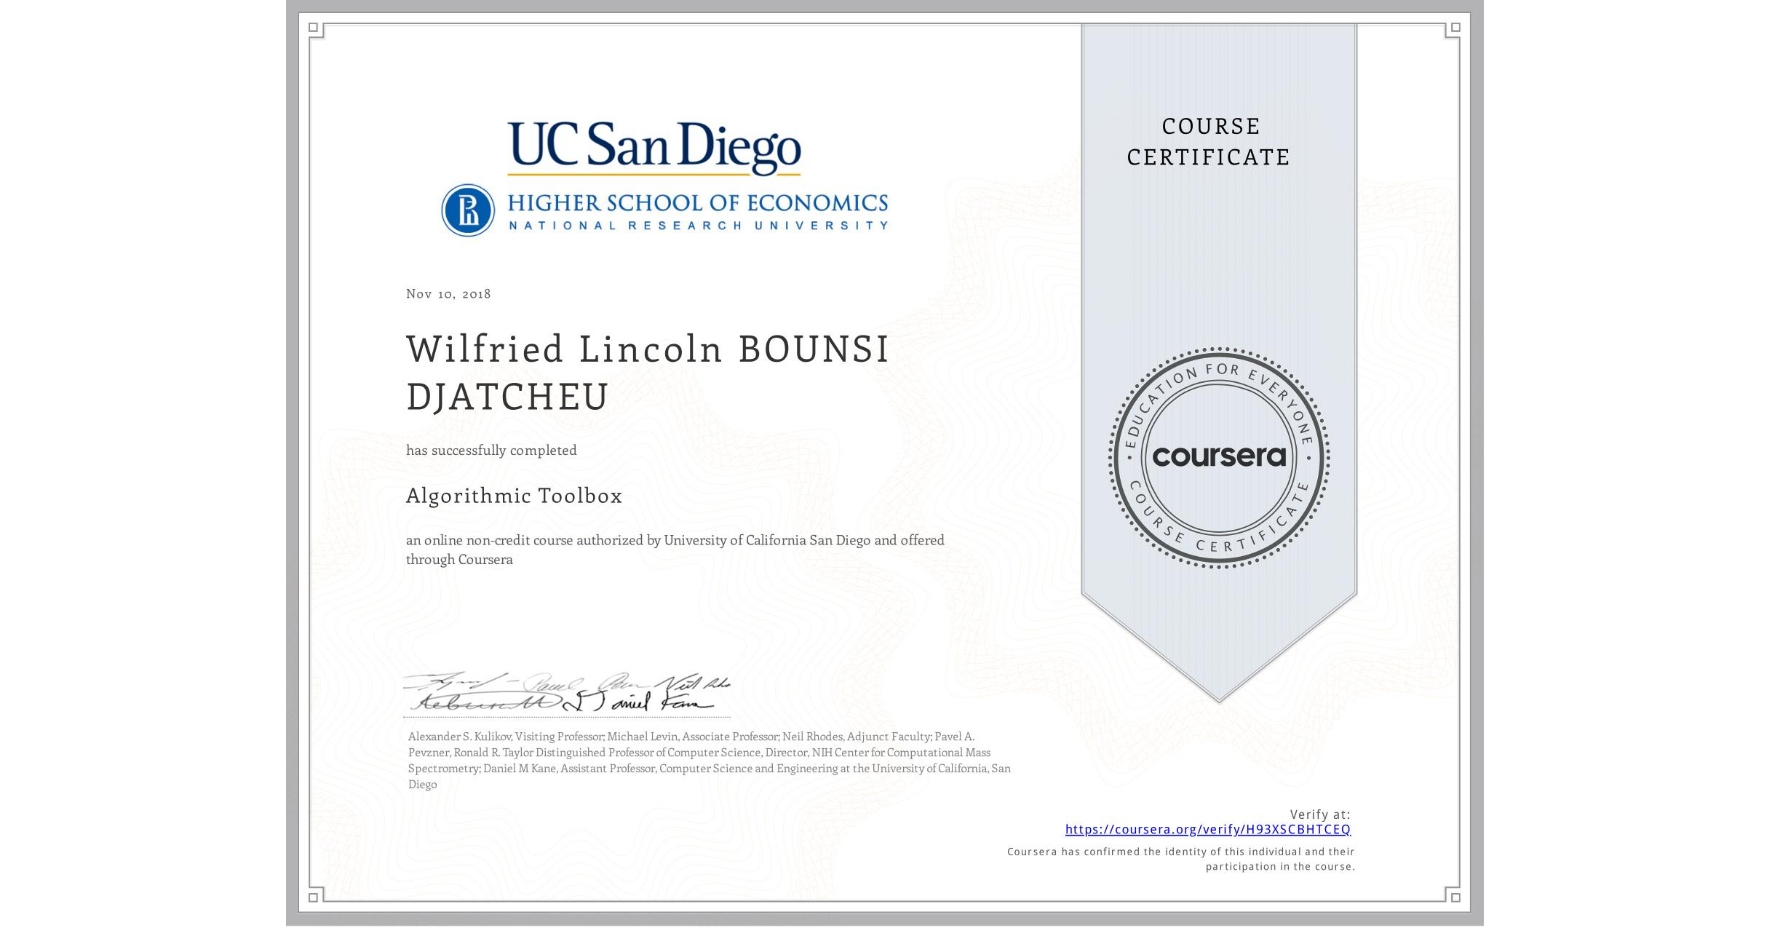 View certificate for Wilfried Lincoln BOUNSI DJATCHEU, Algorithmic Toolbox, an online non-credit course authorized by University of California San Diego & HSE University and offered through Coursera